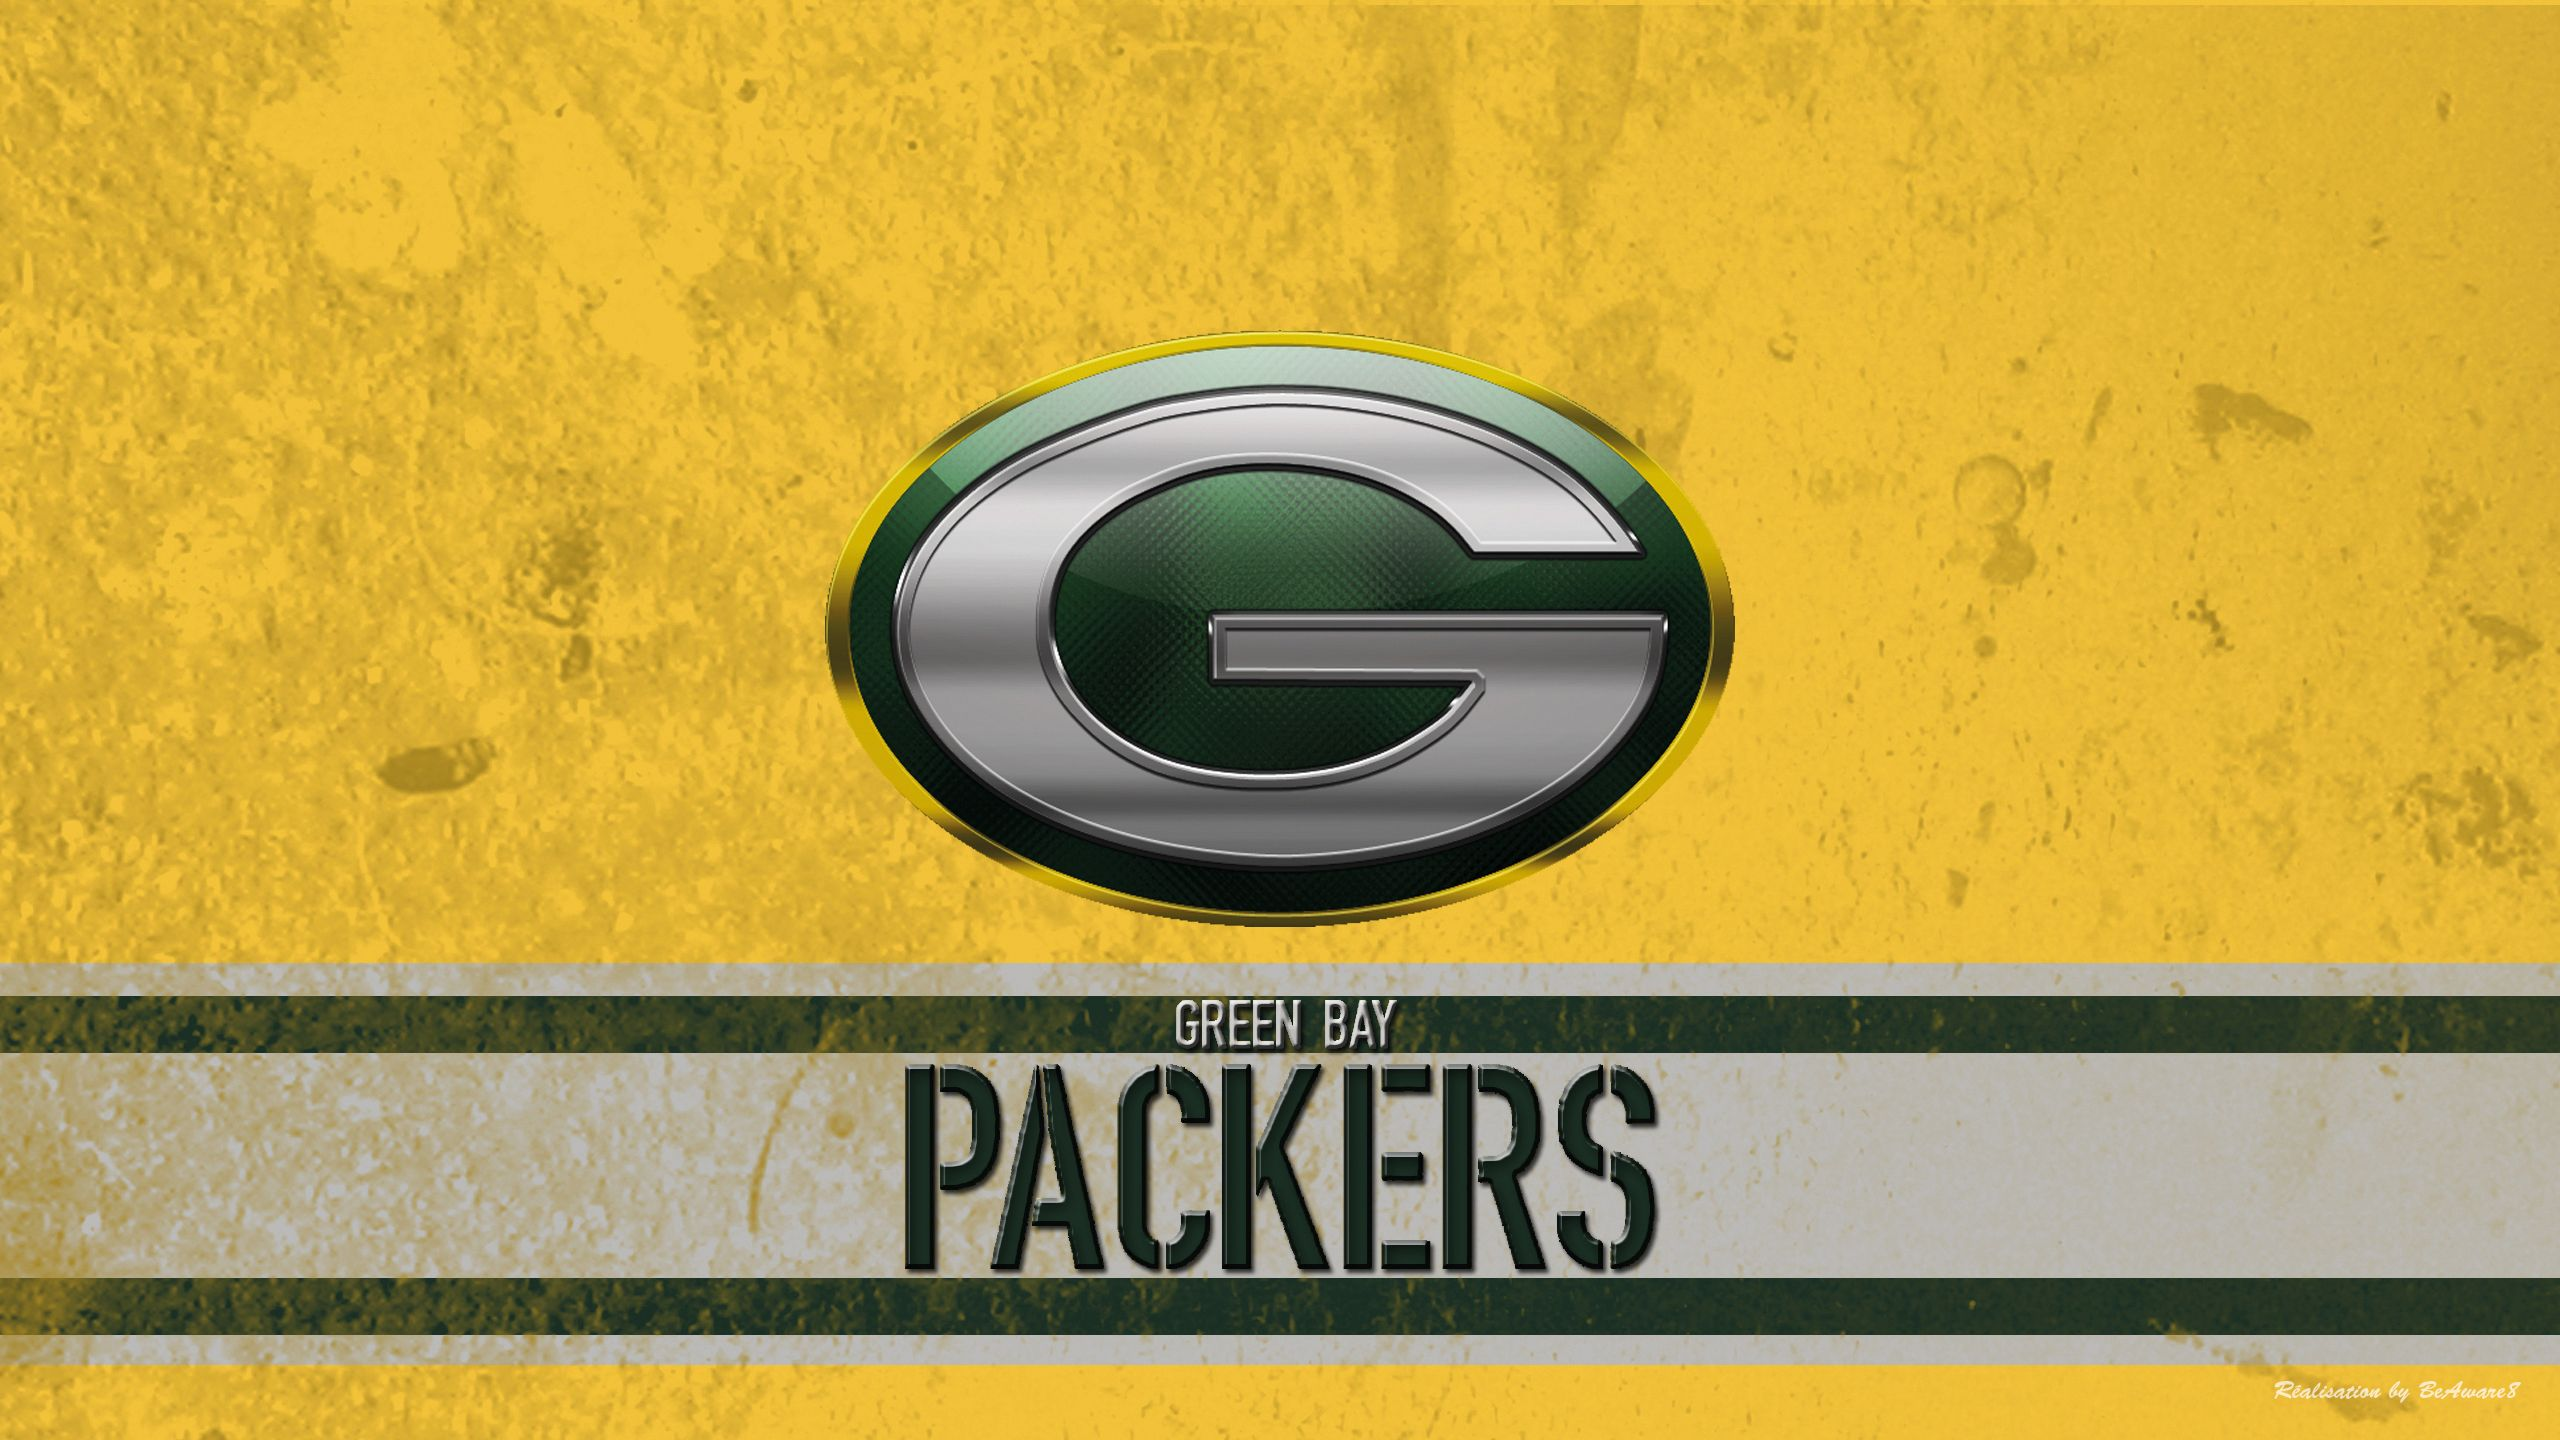 Green Bay Packers Green Bay Packers Wallpaper 1233633 Green Bay Packers Wallpaper Green Bay Packers Green Bay Packers Art